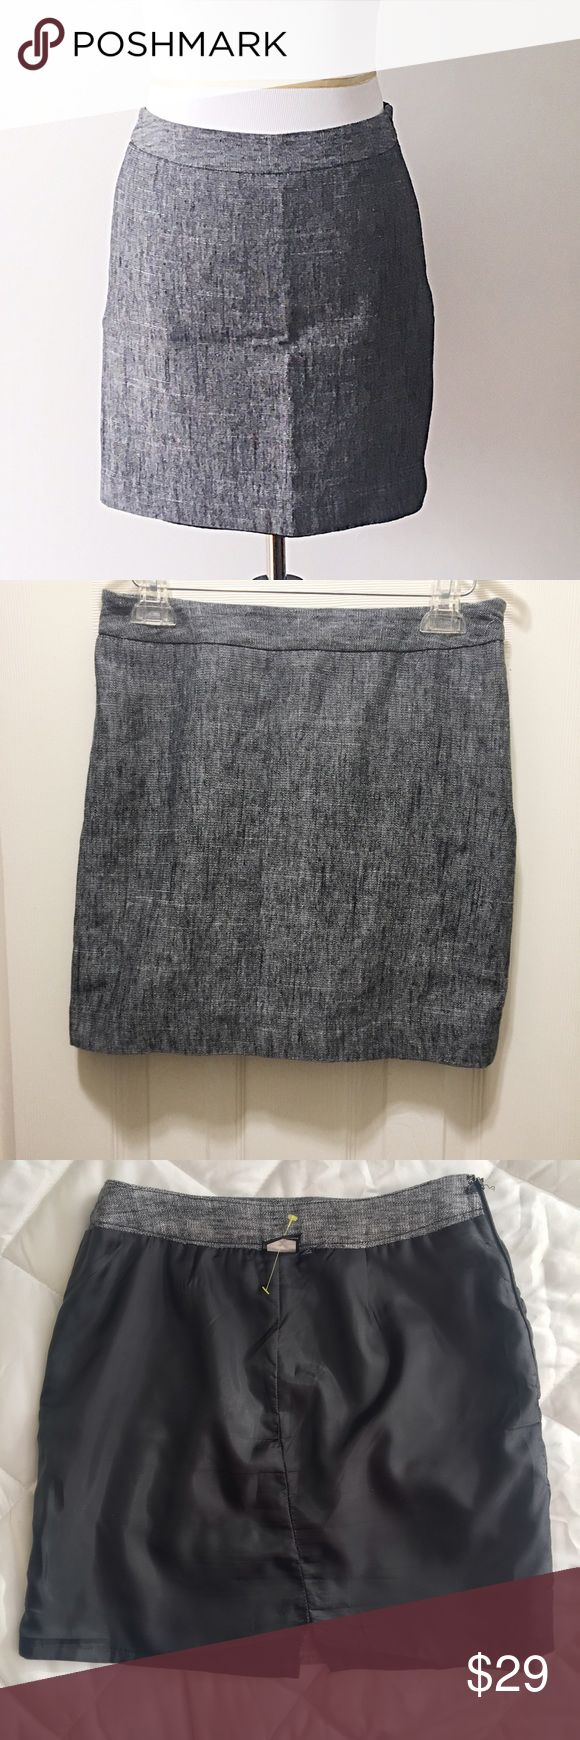 "Nine West Suits Grey Linen Skirt Size 4P Pre-loved grey skirt in great condition. Perfect for the office then a night out. Fits at the hips & has a hidden zipper on the side. It's dry cleaned and ready for you to wear!   * Composition: 53% linen + 47% cotton * Measures 16.5"" long and 14.5"" wide 📦 Bundle + save on shipping  📫 Same day shipping M-F 🚫 NO TRADES Nine West Skirts"